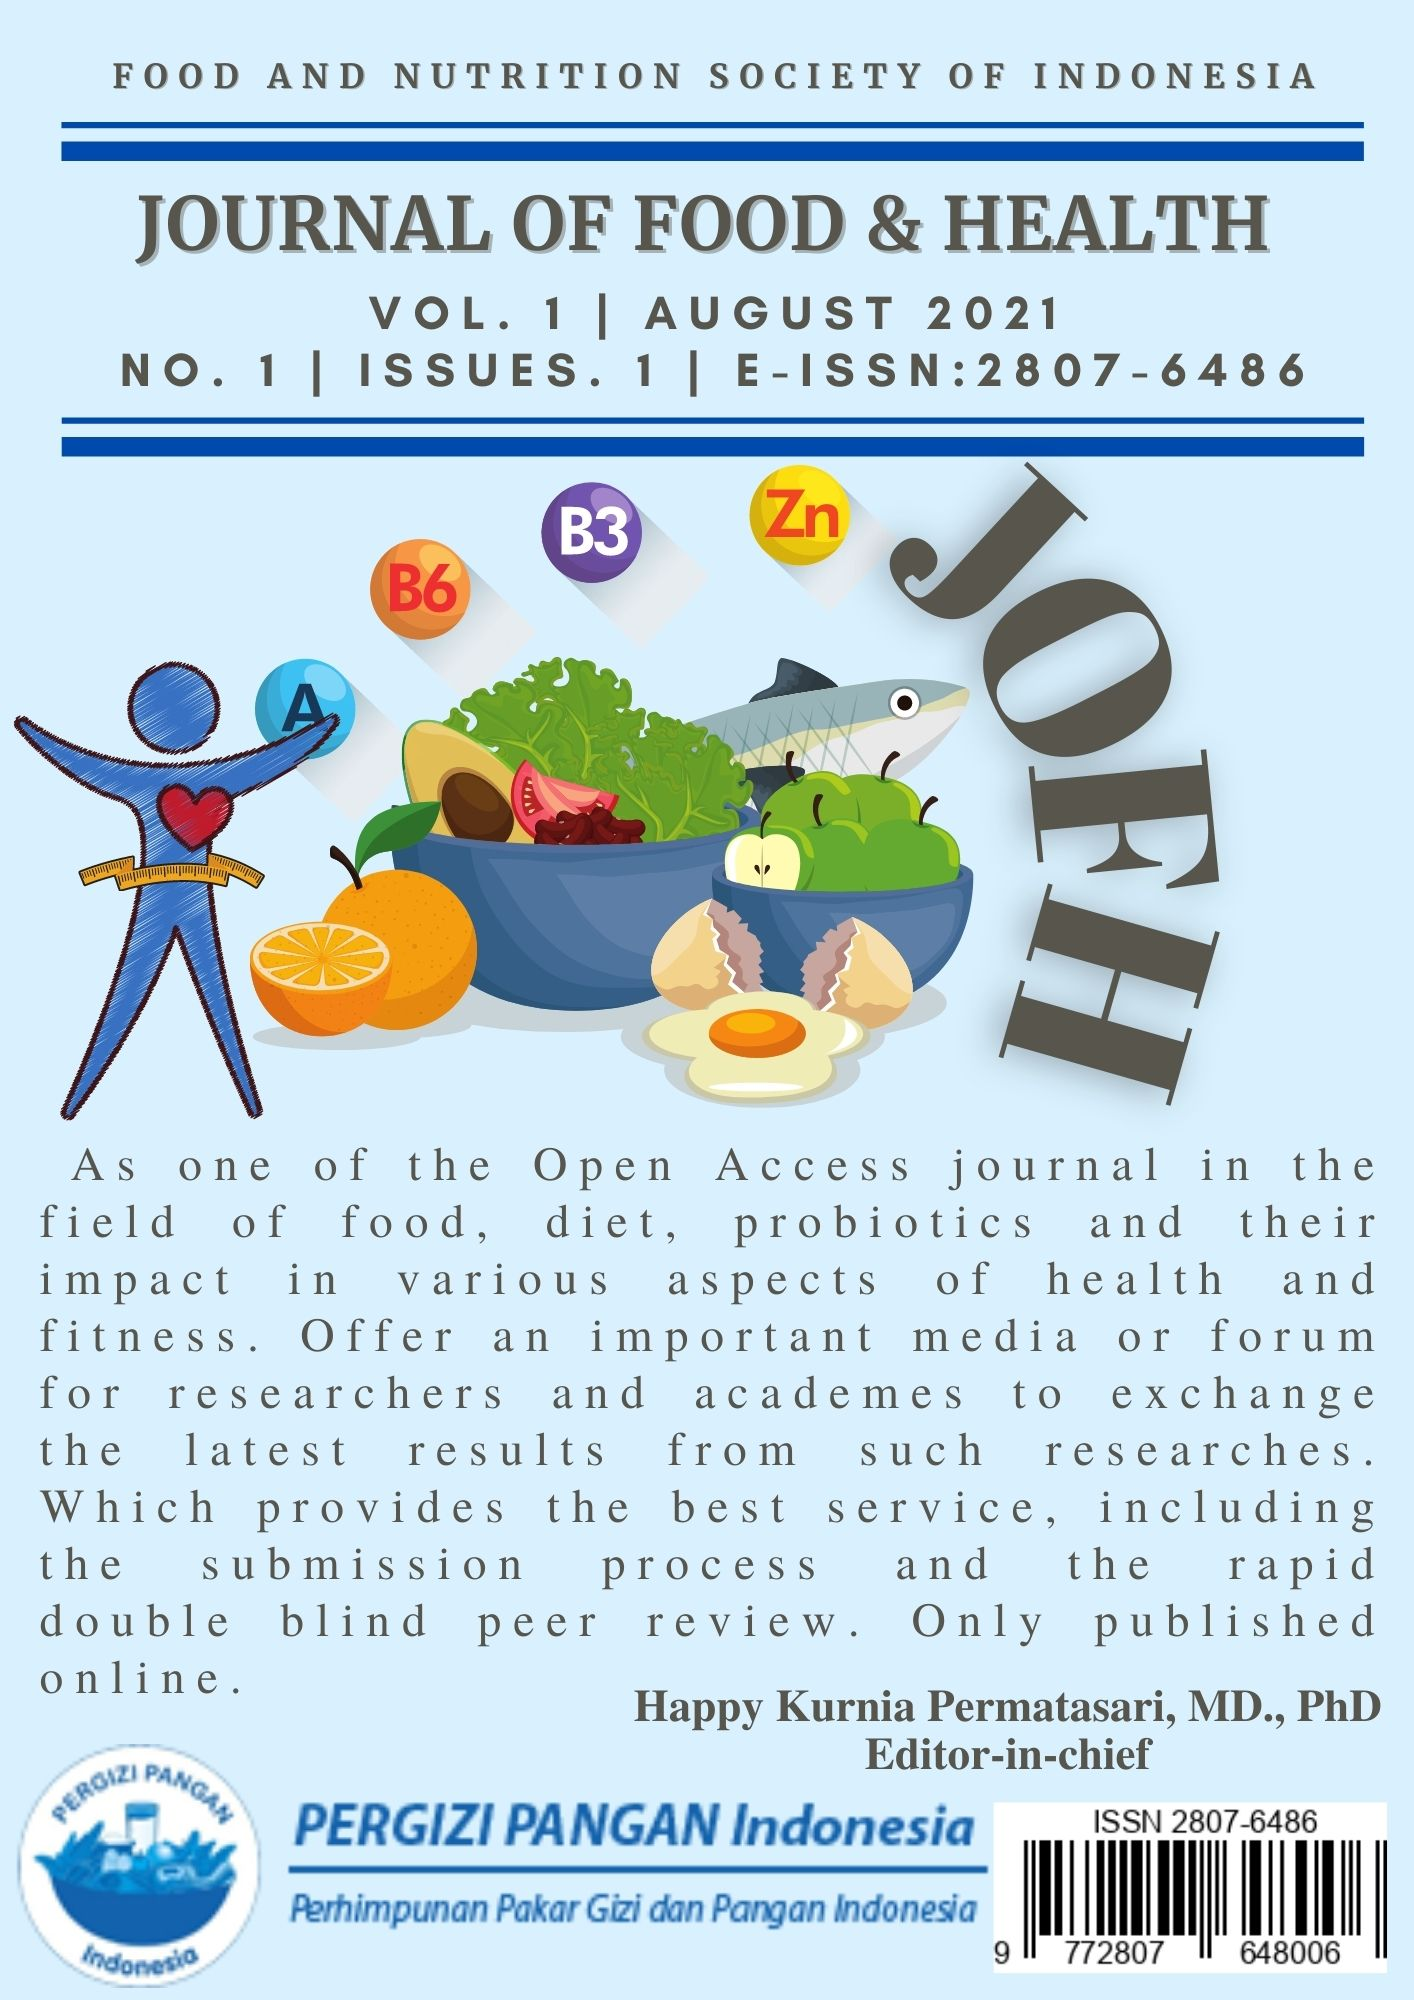 Cover of Issue 1 Volume 1 Journal of Food and Health